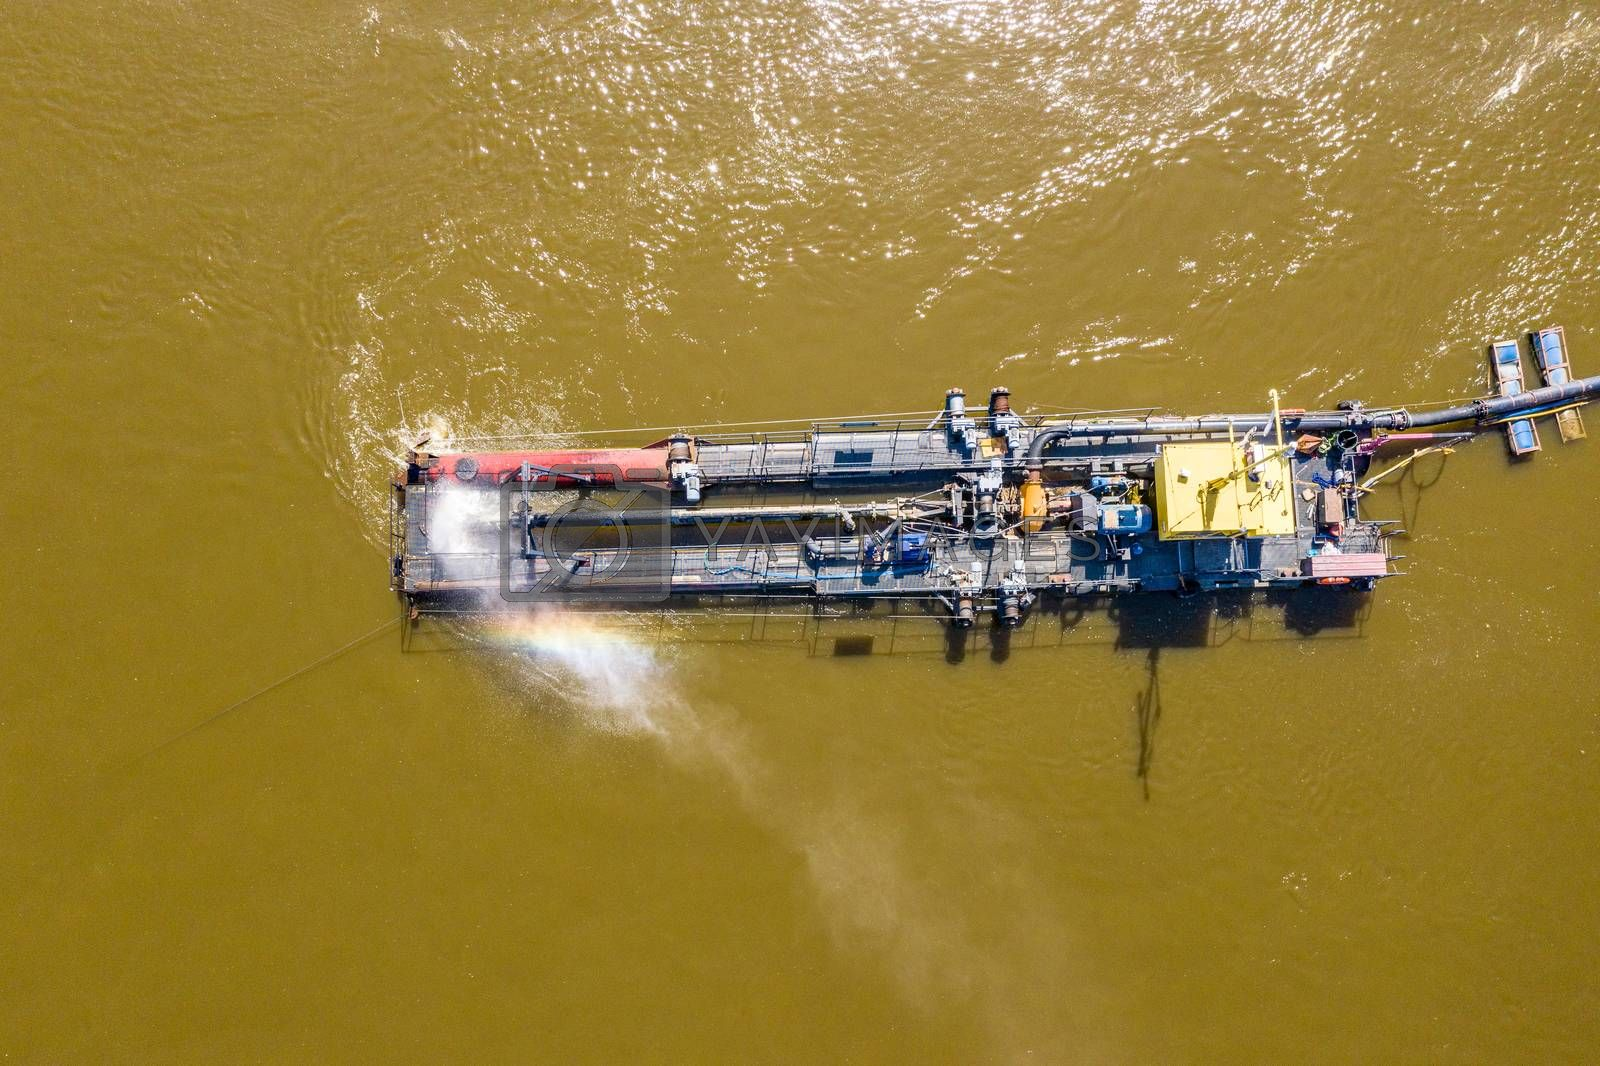 Water pump on the river bank on a big boat. Aerial view